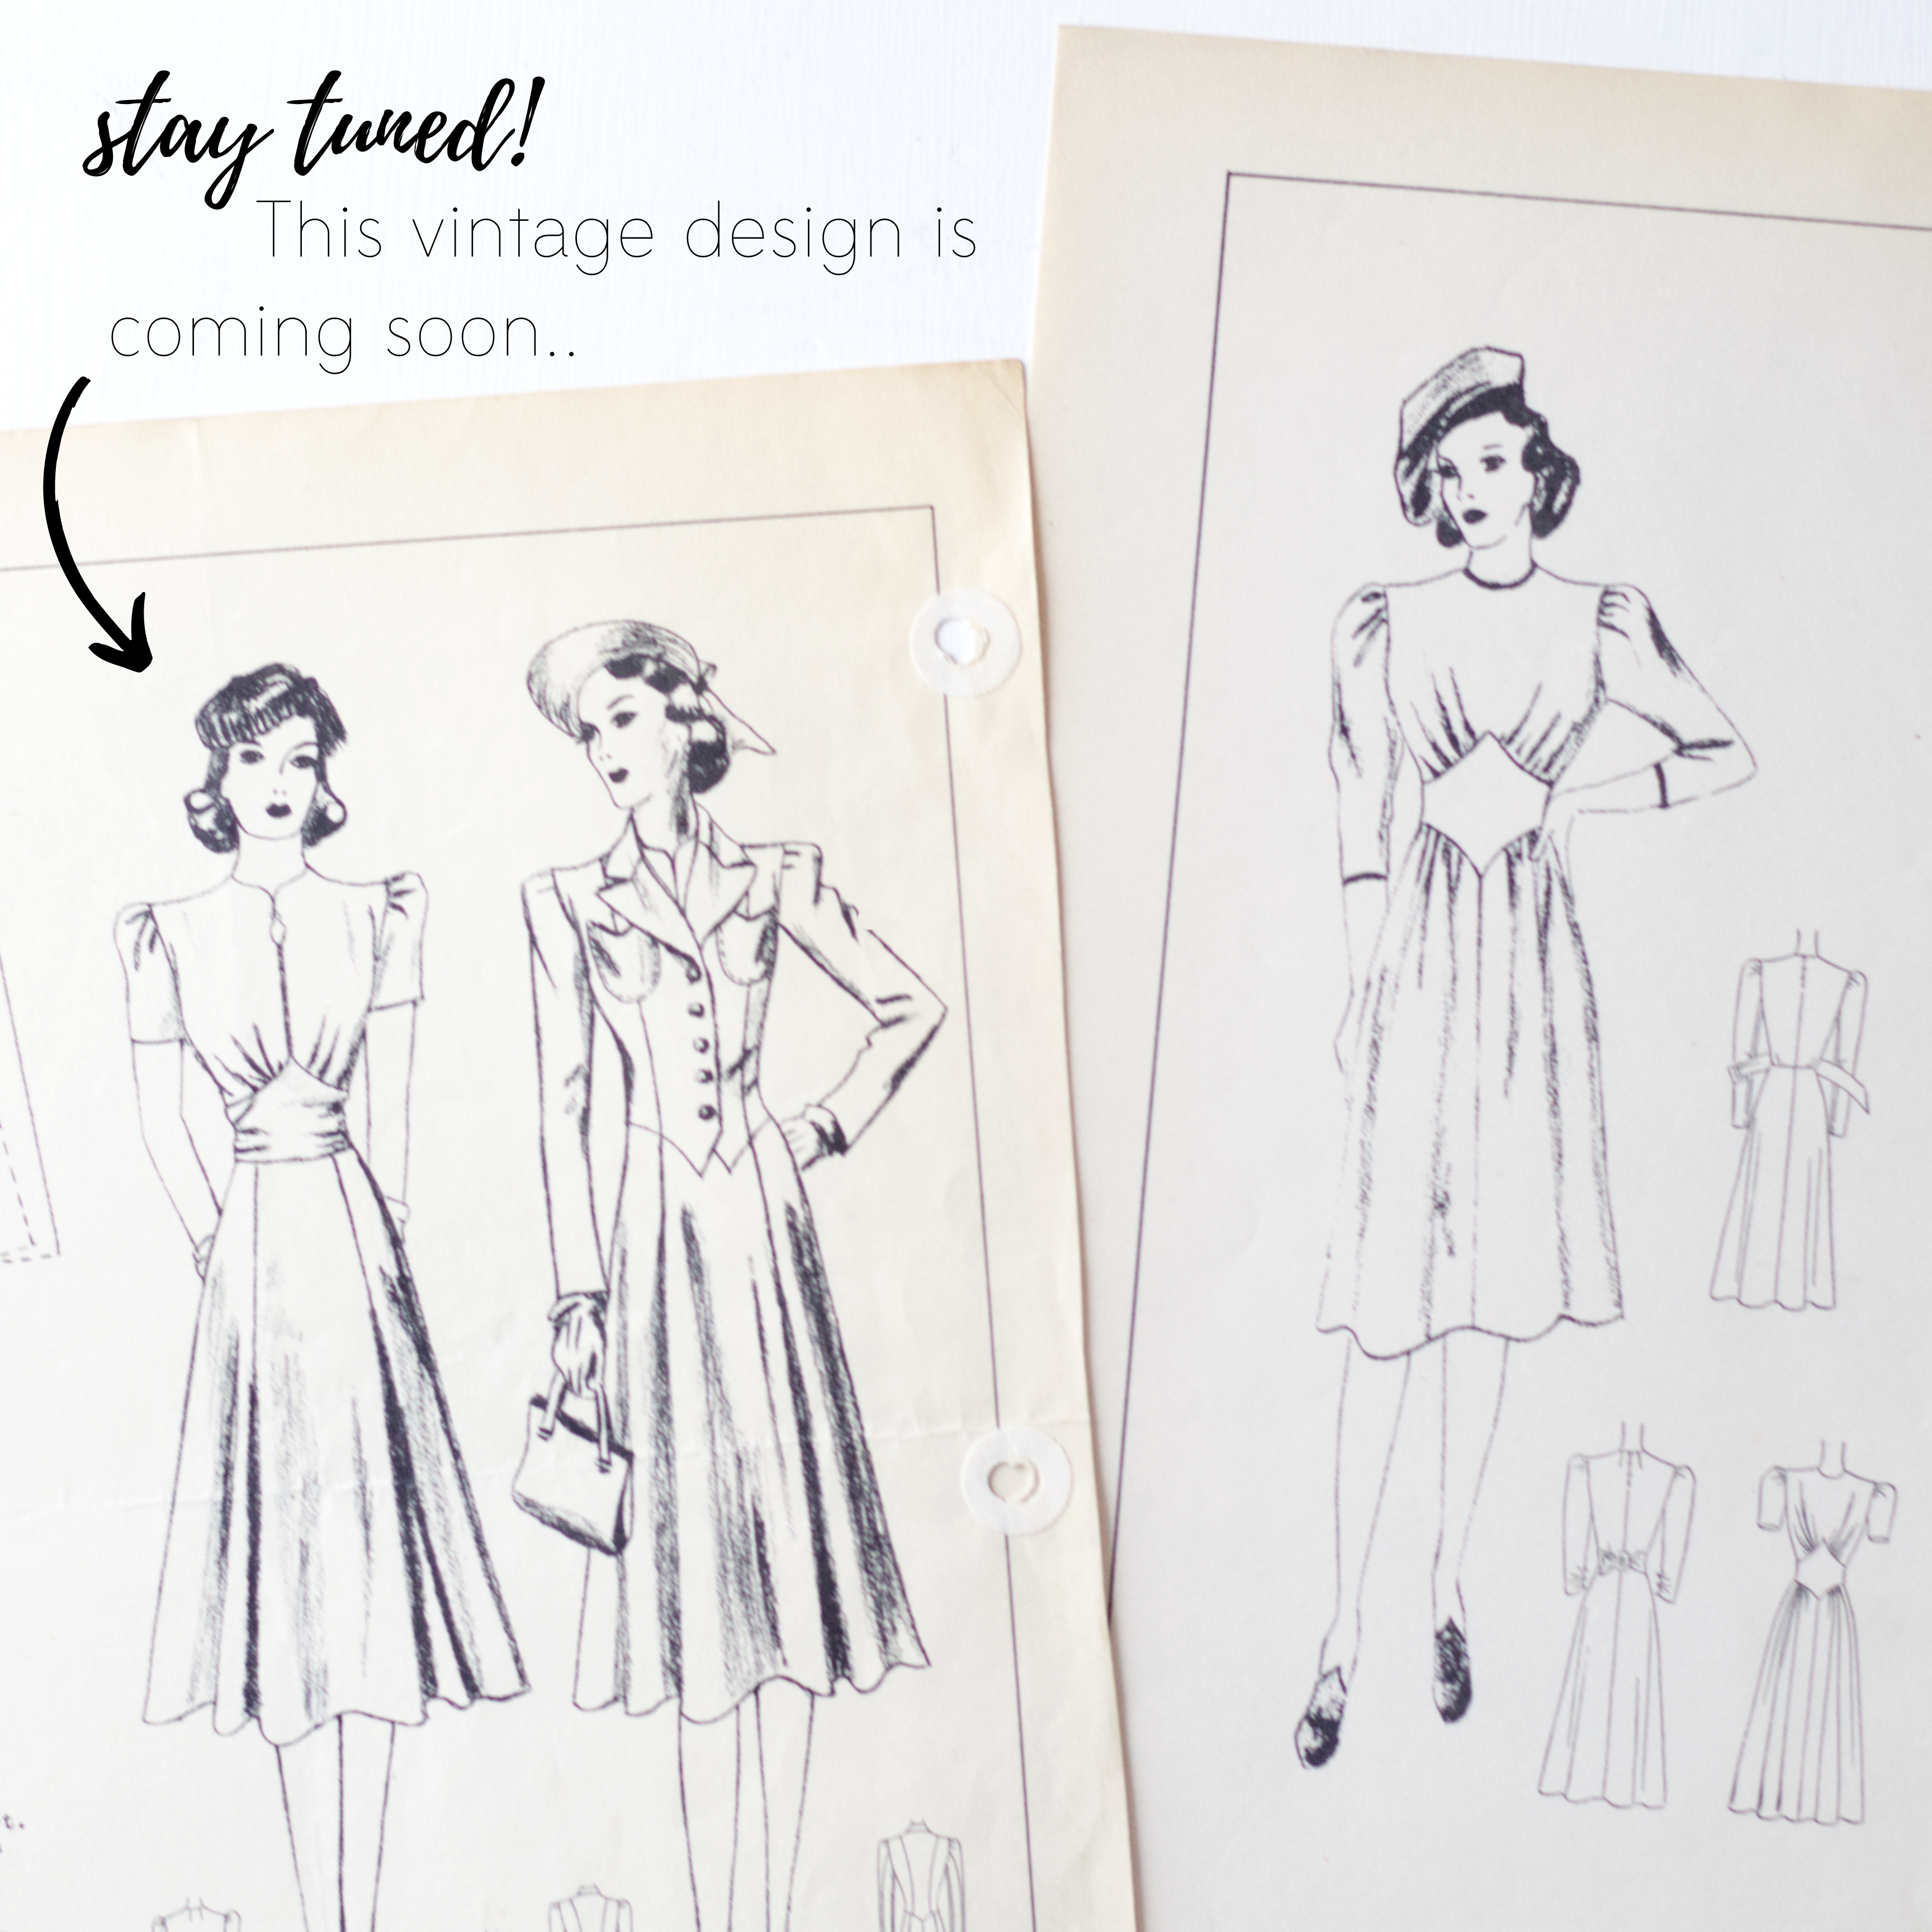 Vintage sewing pattern inspiration: New design coming soon!